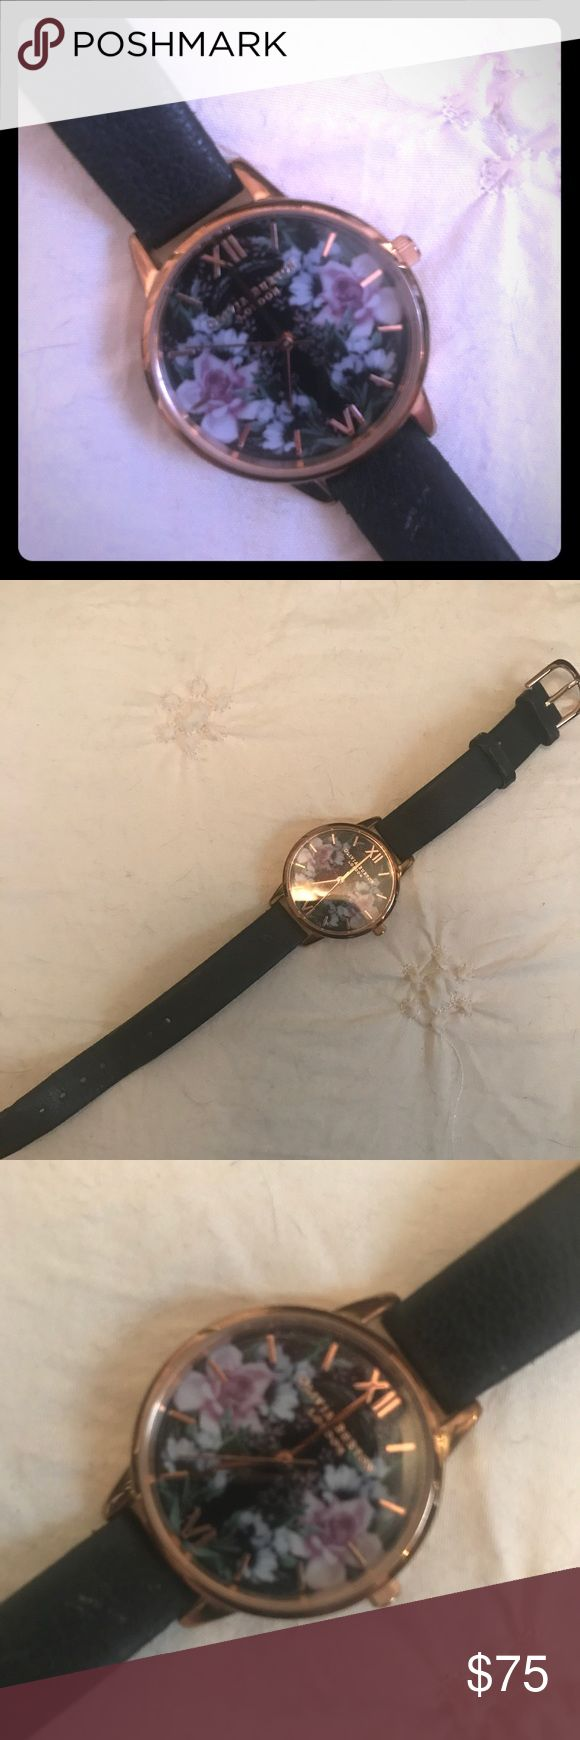 Olivia Burton Watch Olivia Burton Watch, small dial. Normal wear on the leather band. OLIVIA BURTON Accessories Watches